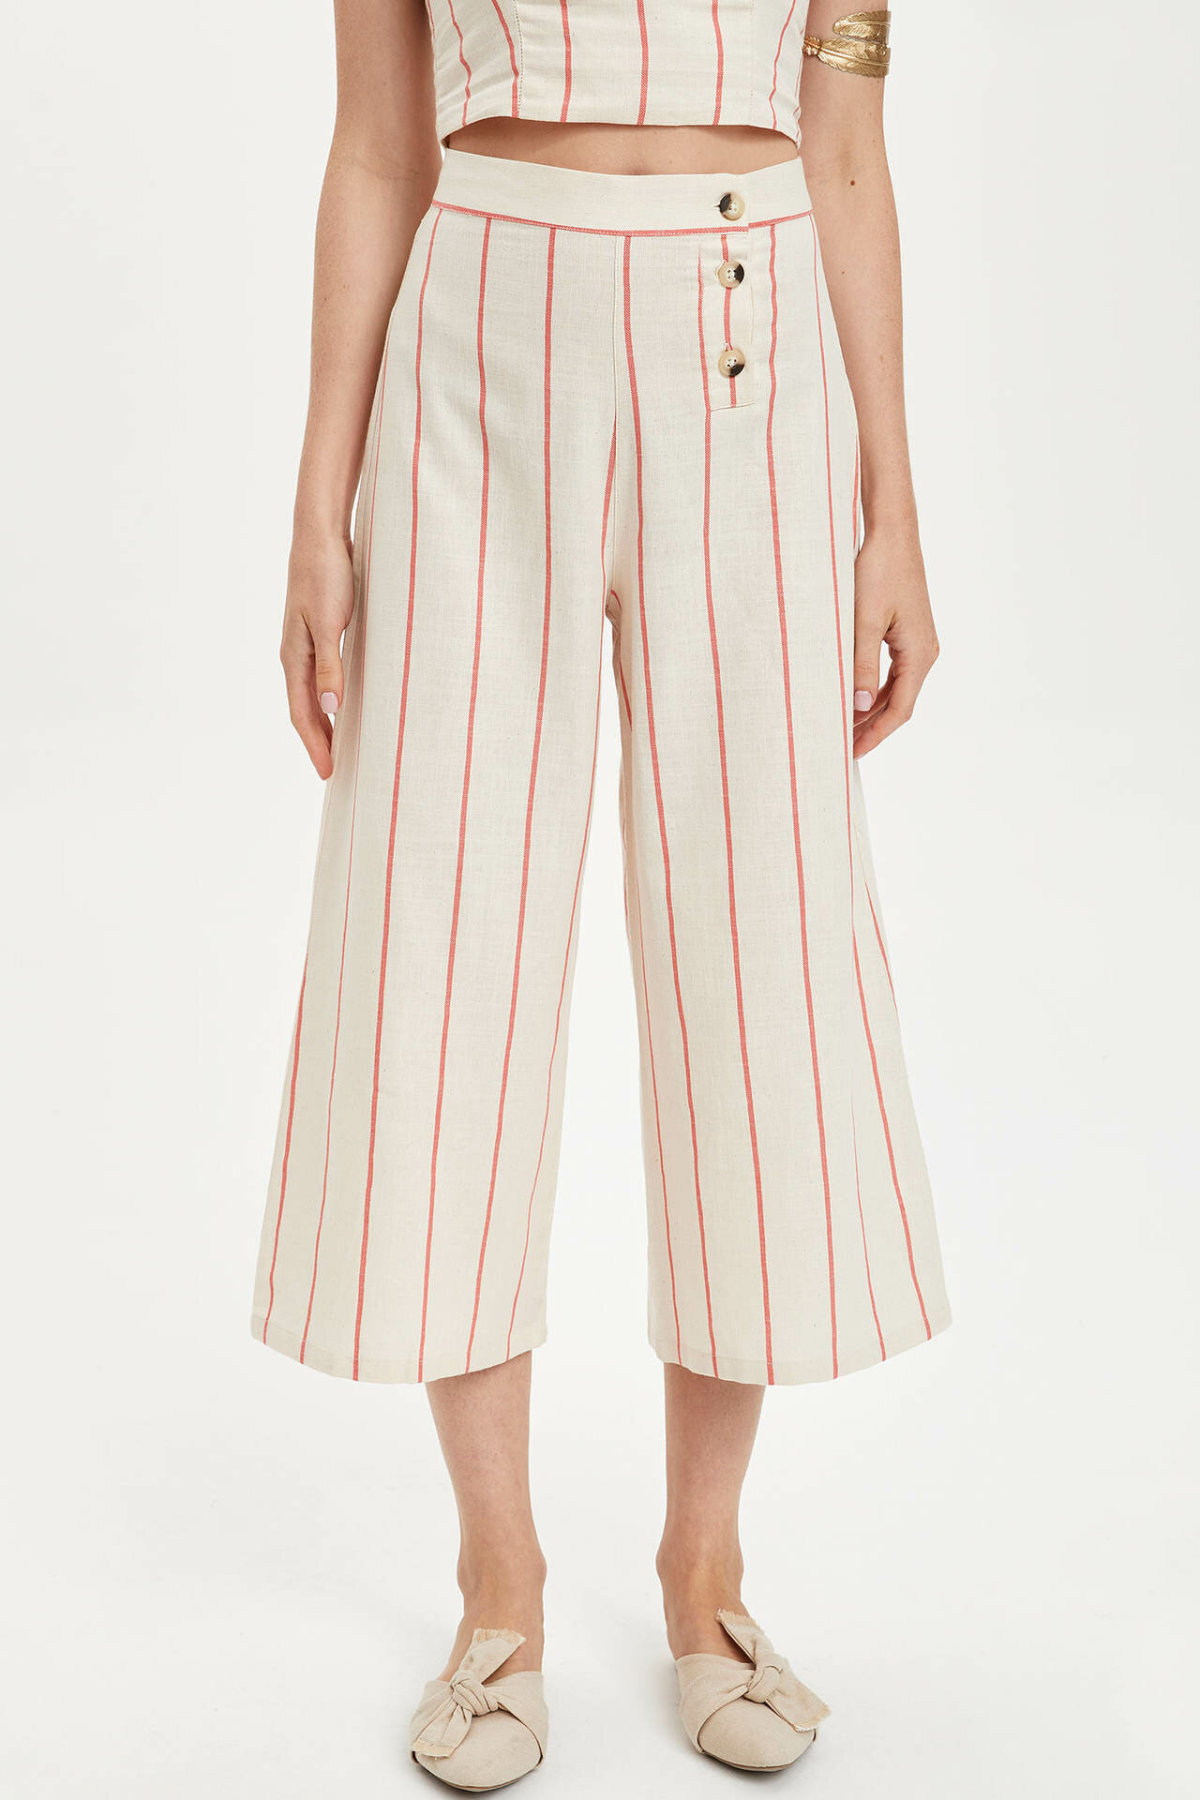 DeFacto Fashion Woman Elegant Trousers Female Striped Wide-leg Crop Pants Ladies Casual Button Comfort Spring - L9749AZ19HS